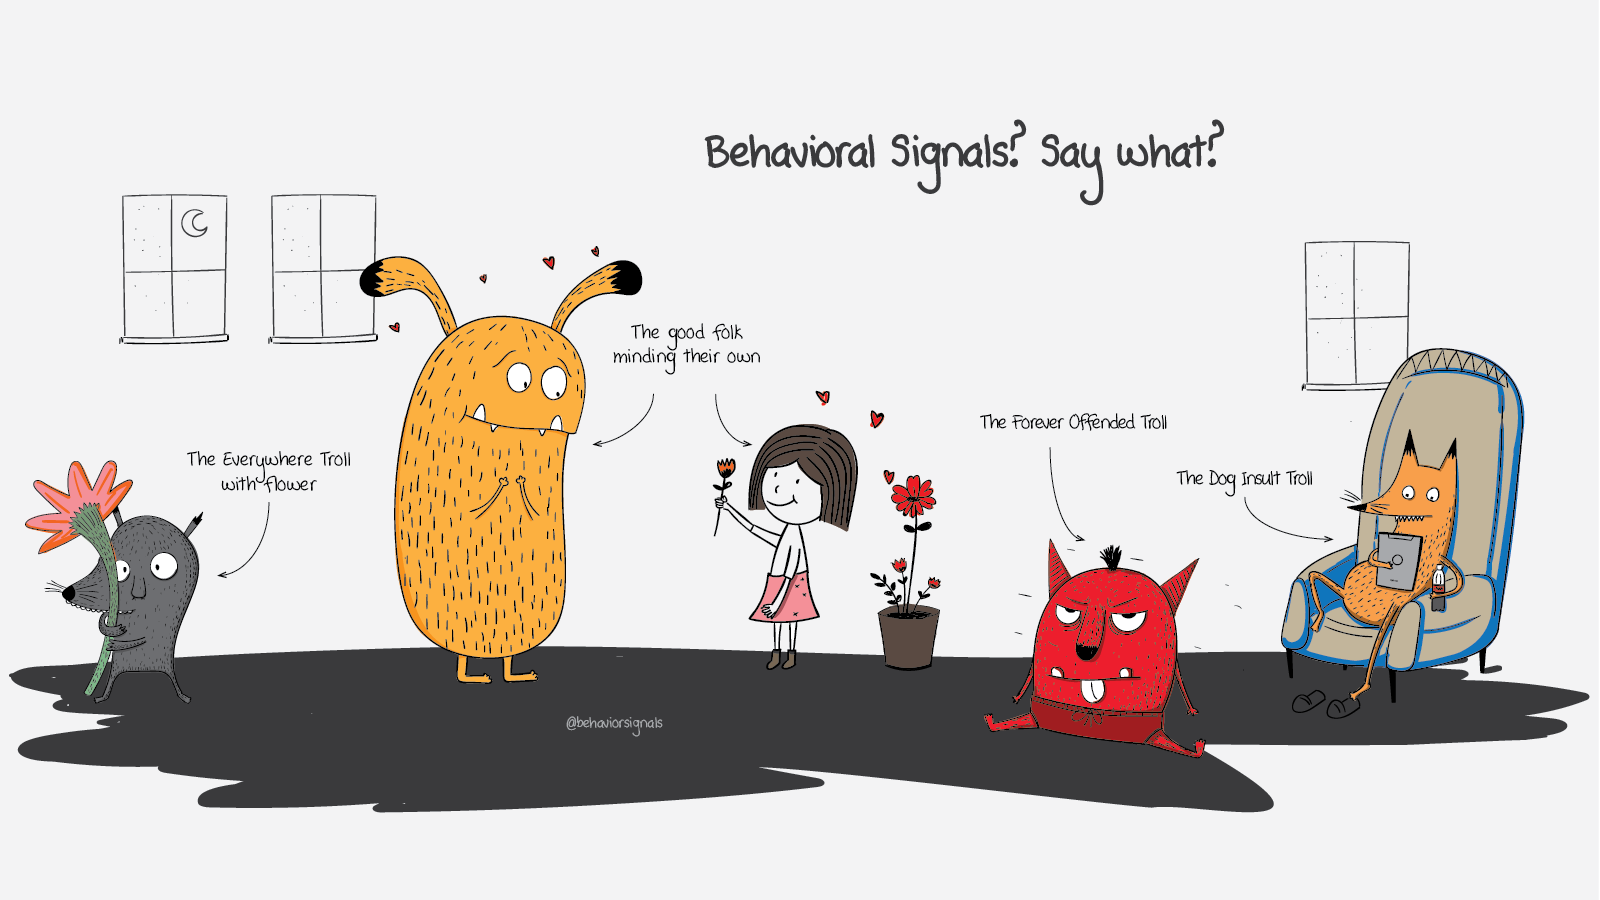 What is 'Behavioral Signals'?